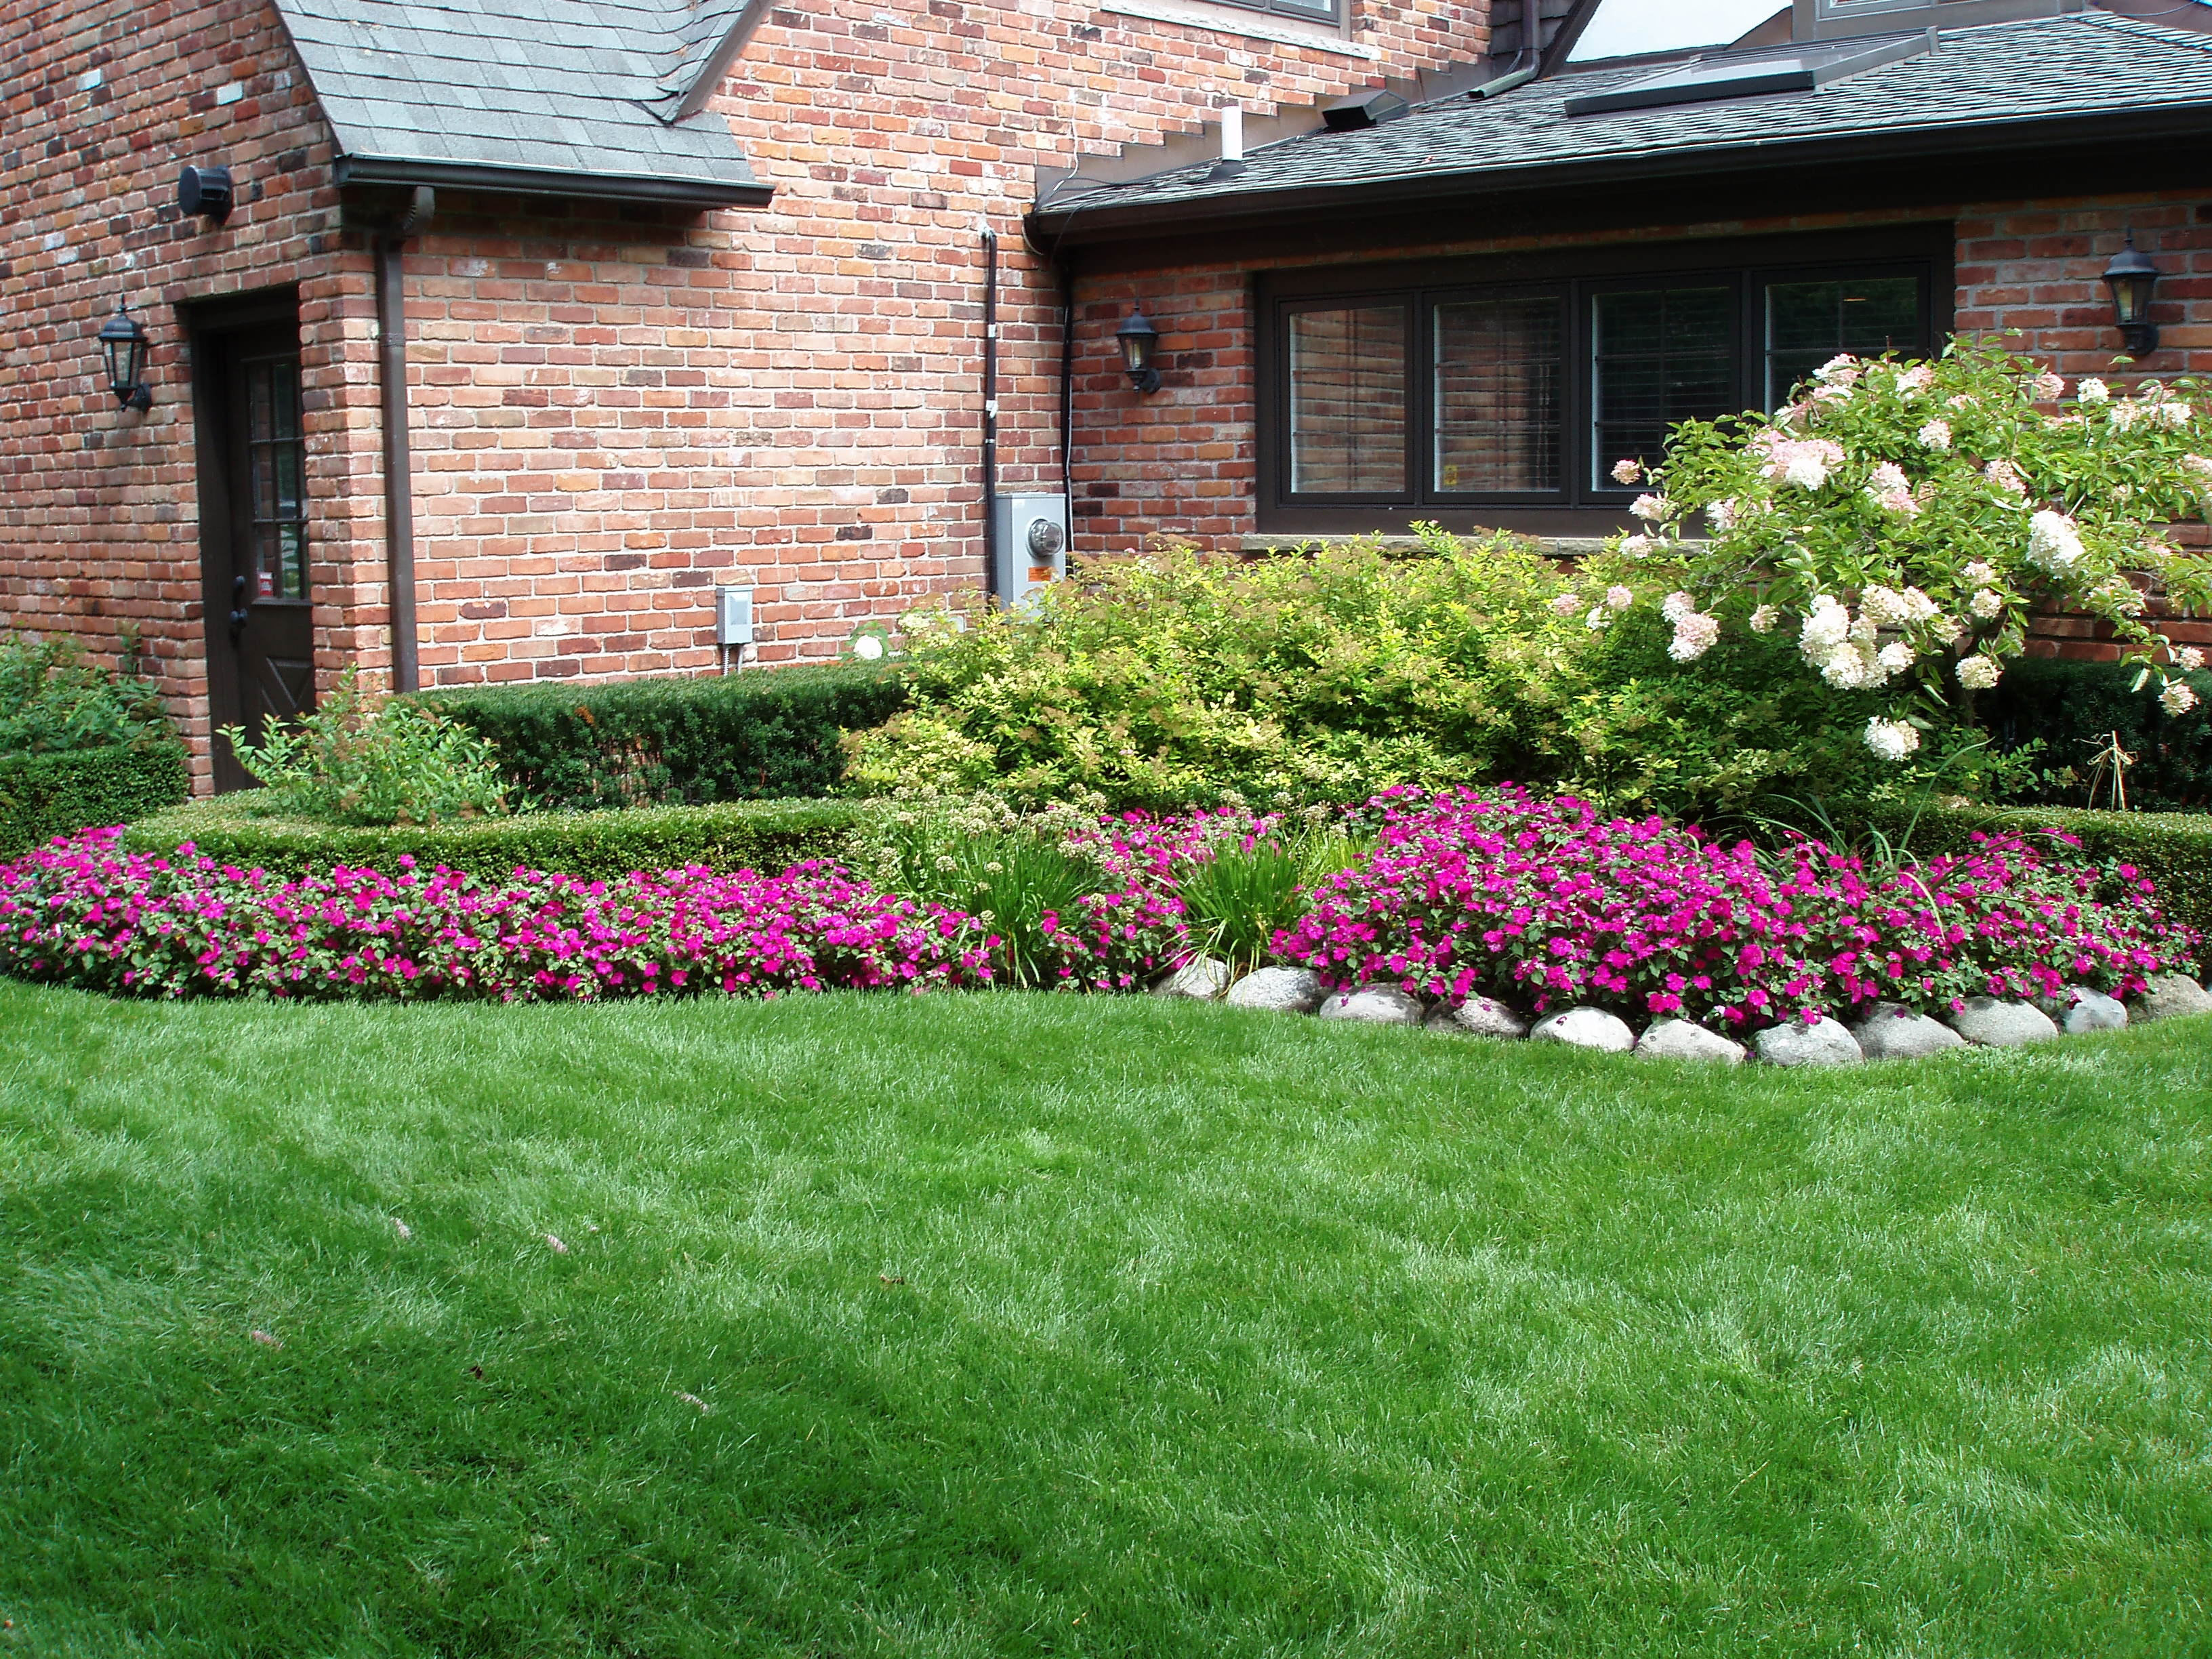 Landscaping total lawn care inc full lawn maintenance for Front yard landscaping